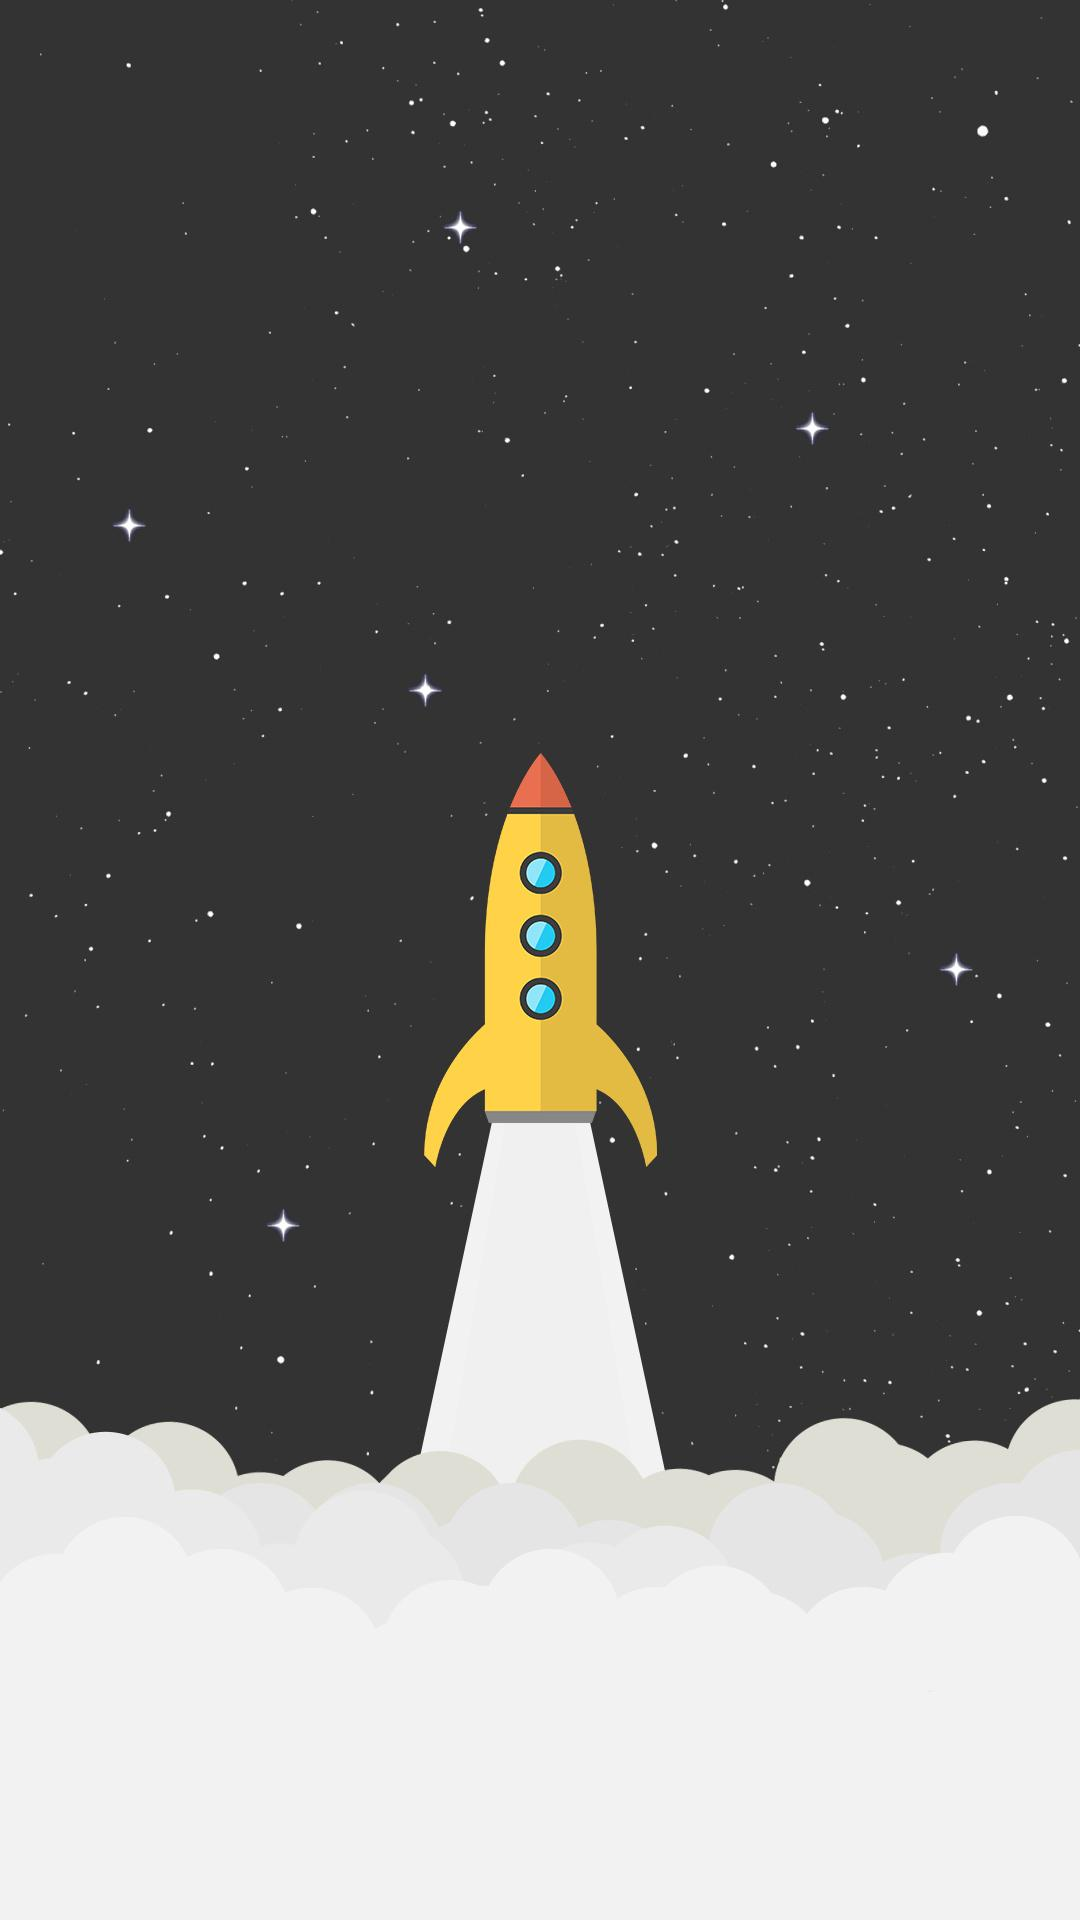 3d Wallpaper Amazon Fire Phone Rocket Space Minimal Background Hd Wallpaper